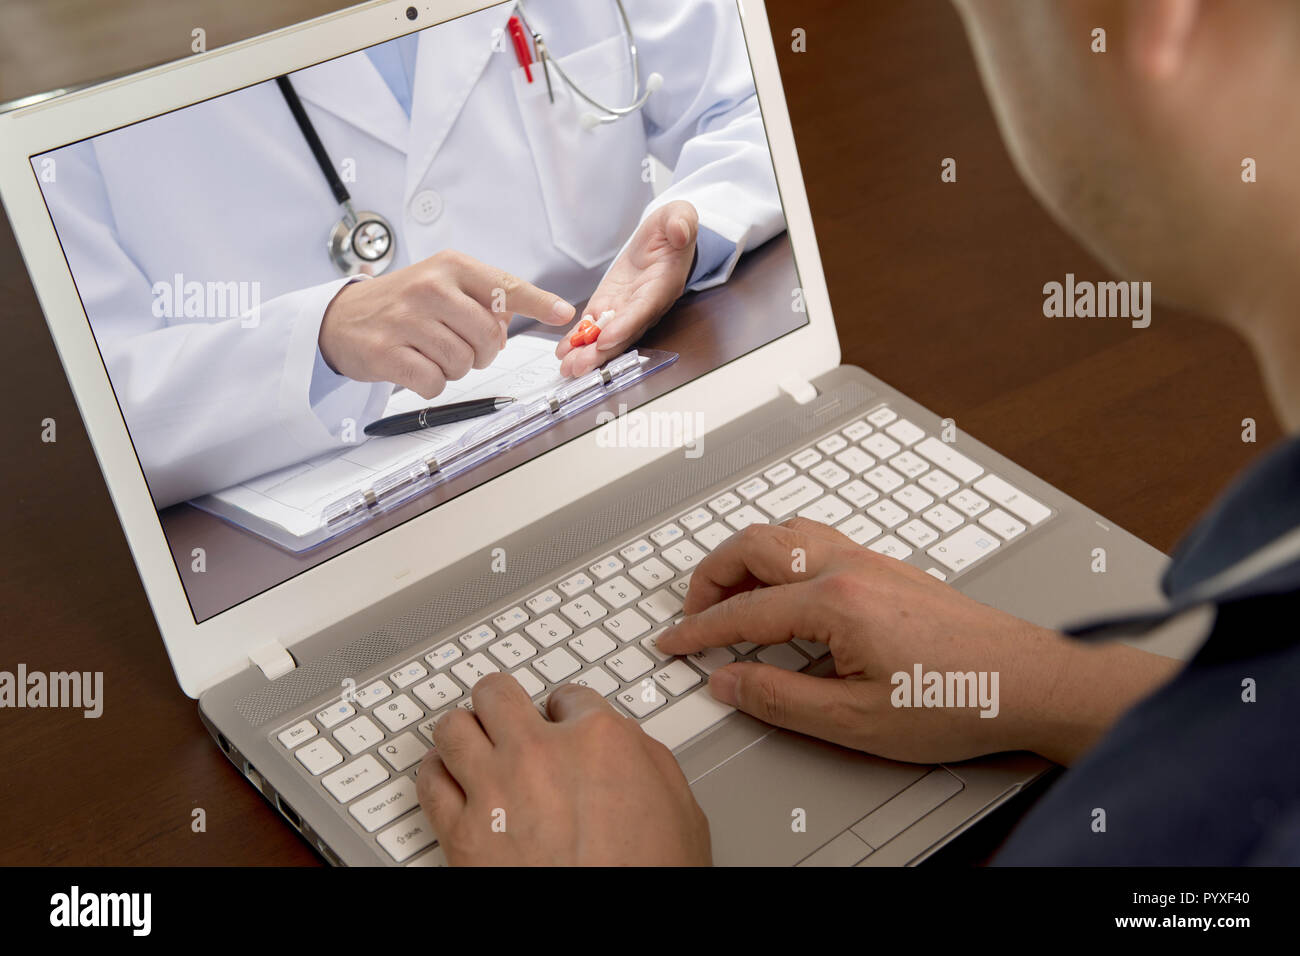 A middle-aged man who uses telemedicine to listen to a doctor for medication. - Stock Image